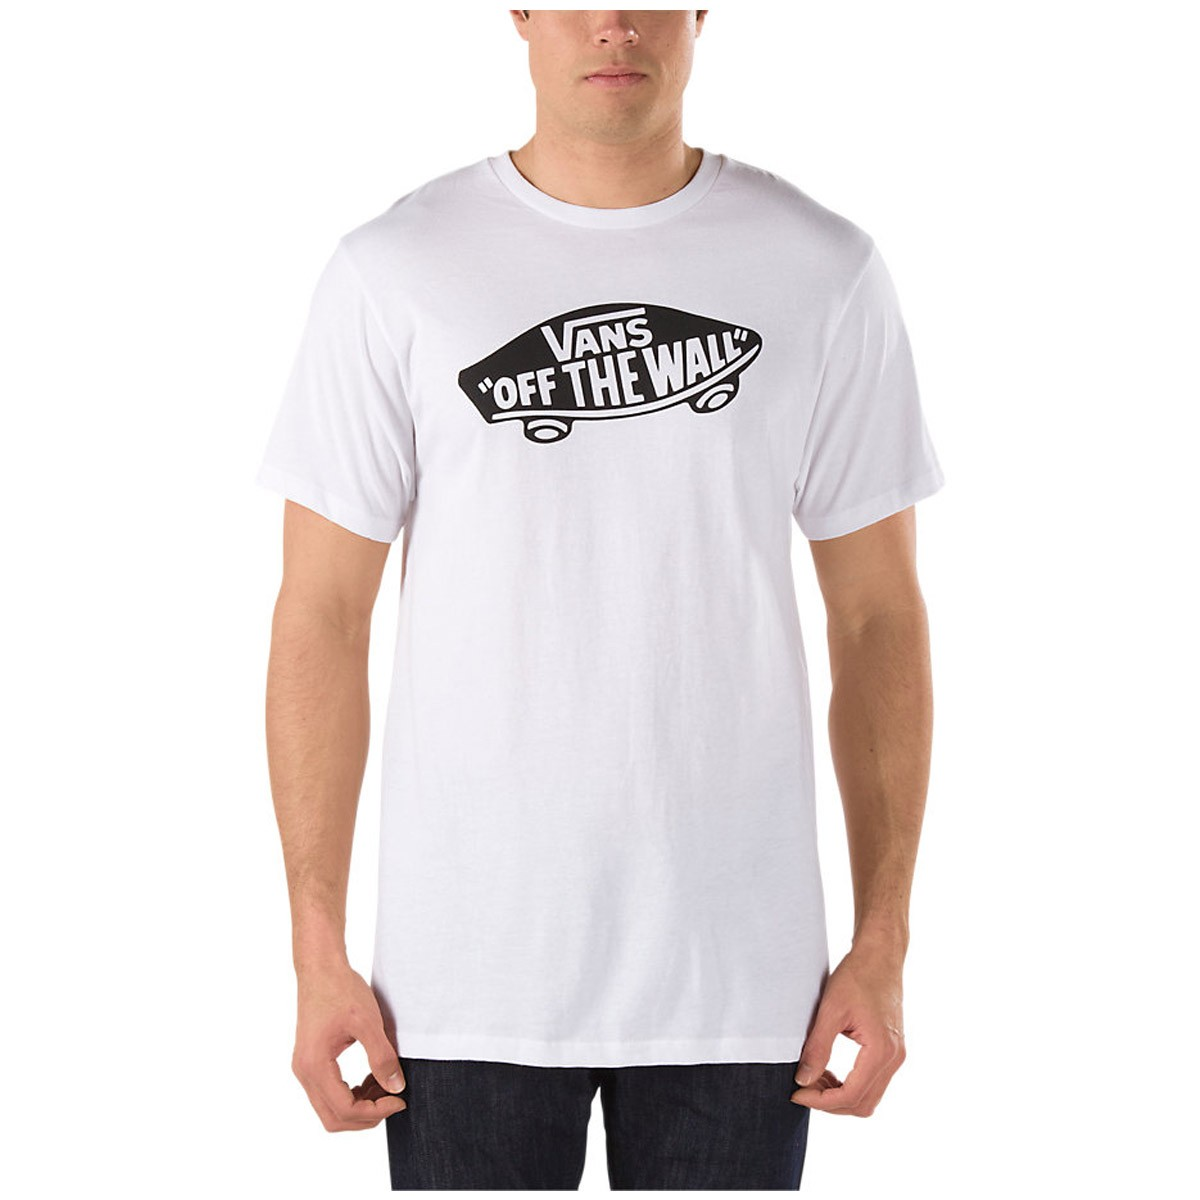 OTW T-Shirt - White/Black